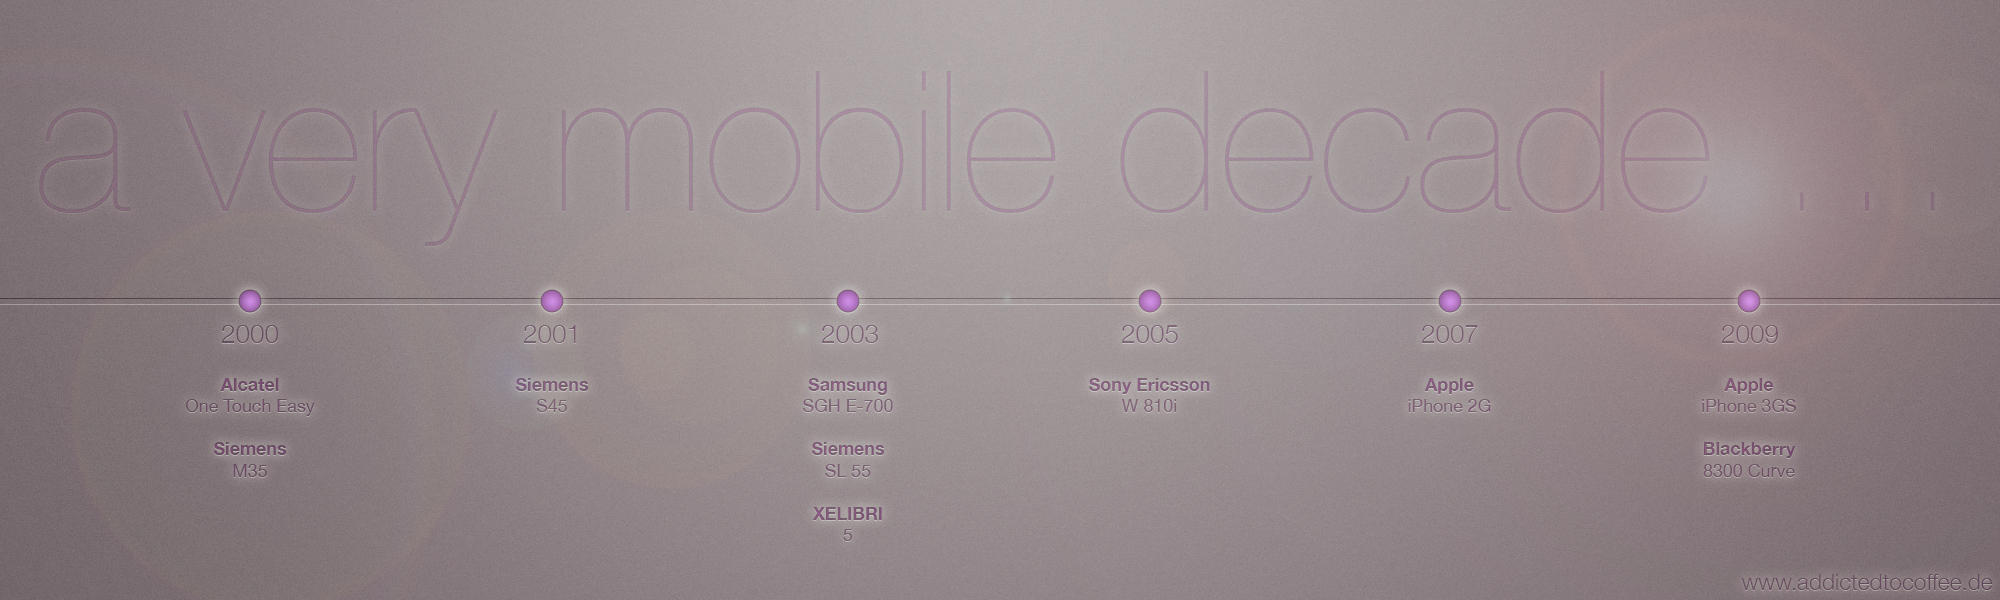 a very mobile decade by twinware